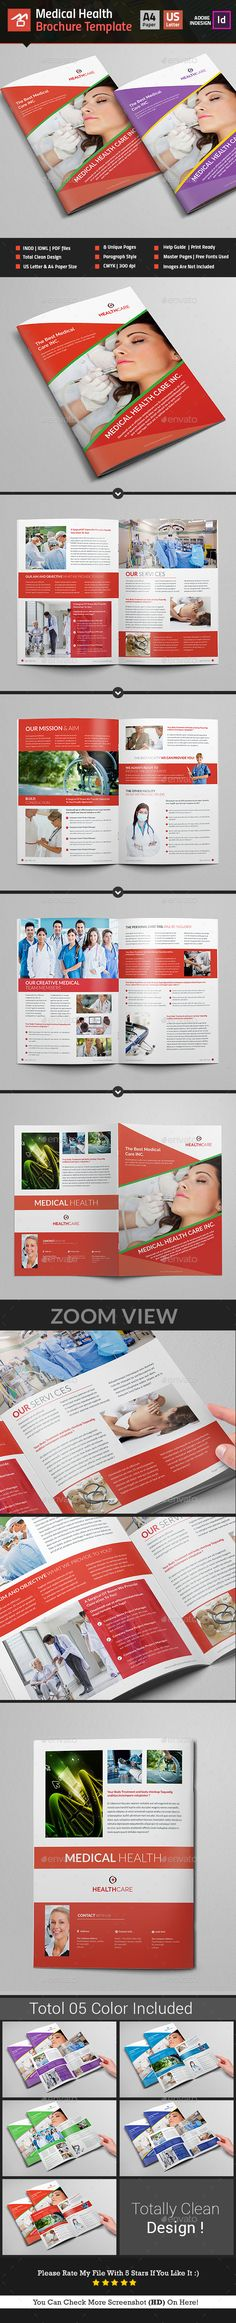 Medical Health Brochure_ 8 Pages